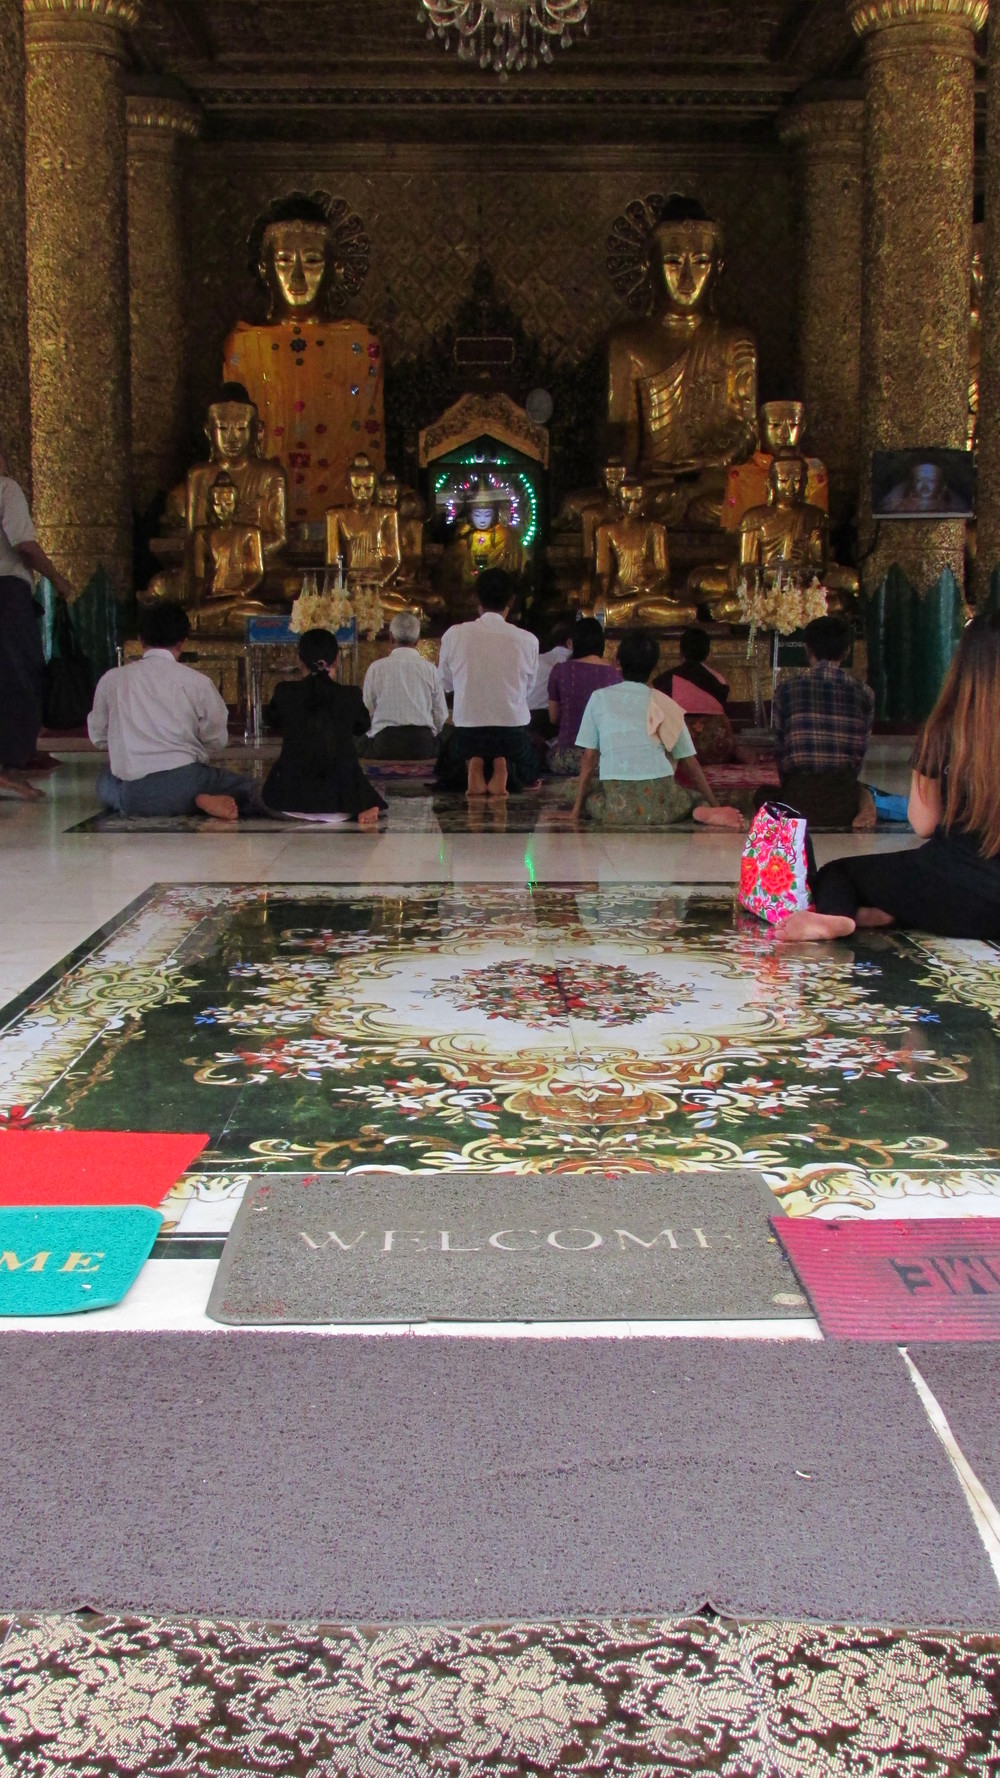 Welcome. Shwedagon Pagoda.